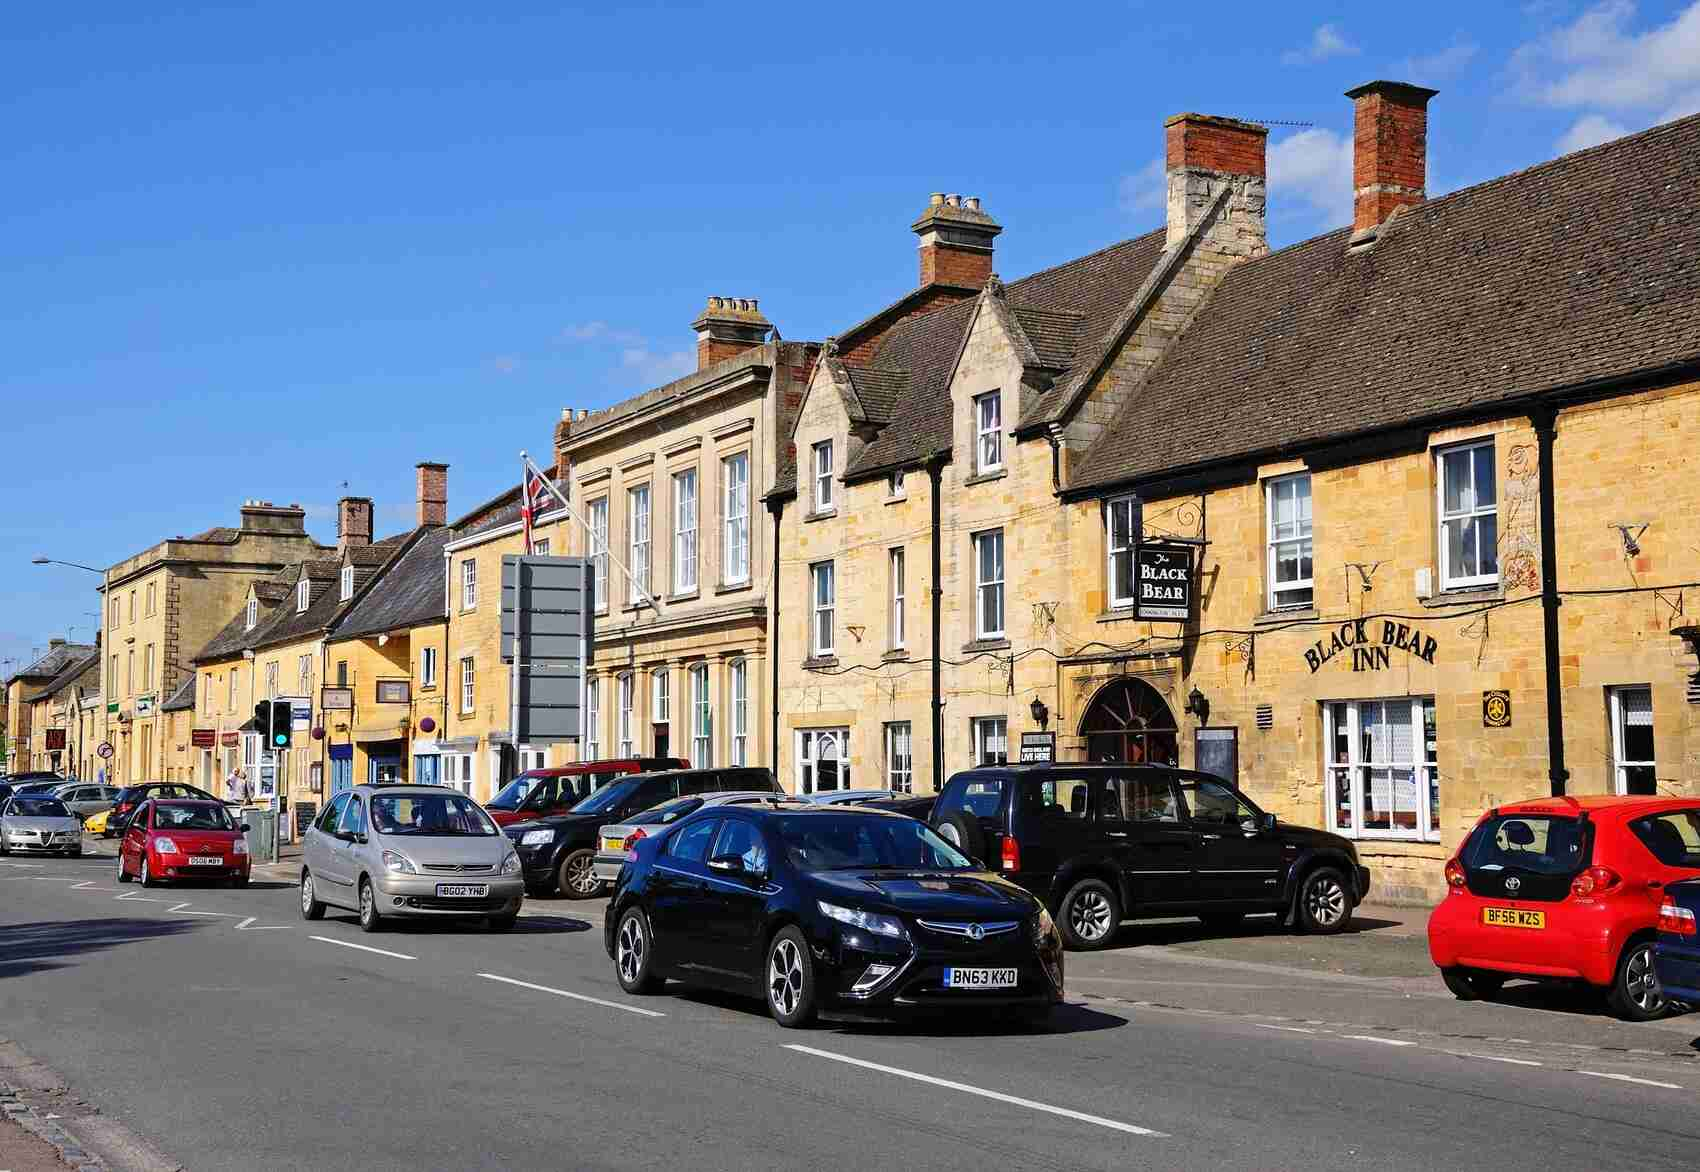 View along the High Street Moreton in Marsh Cotswolds